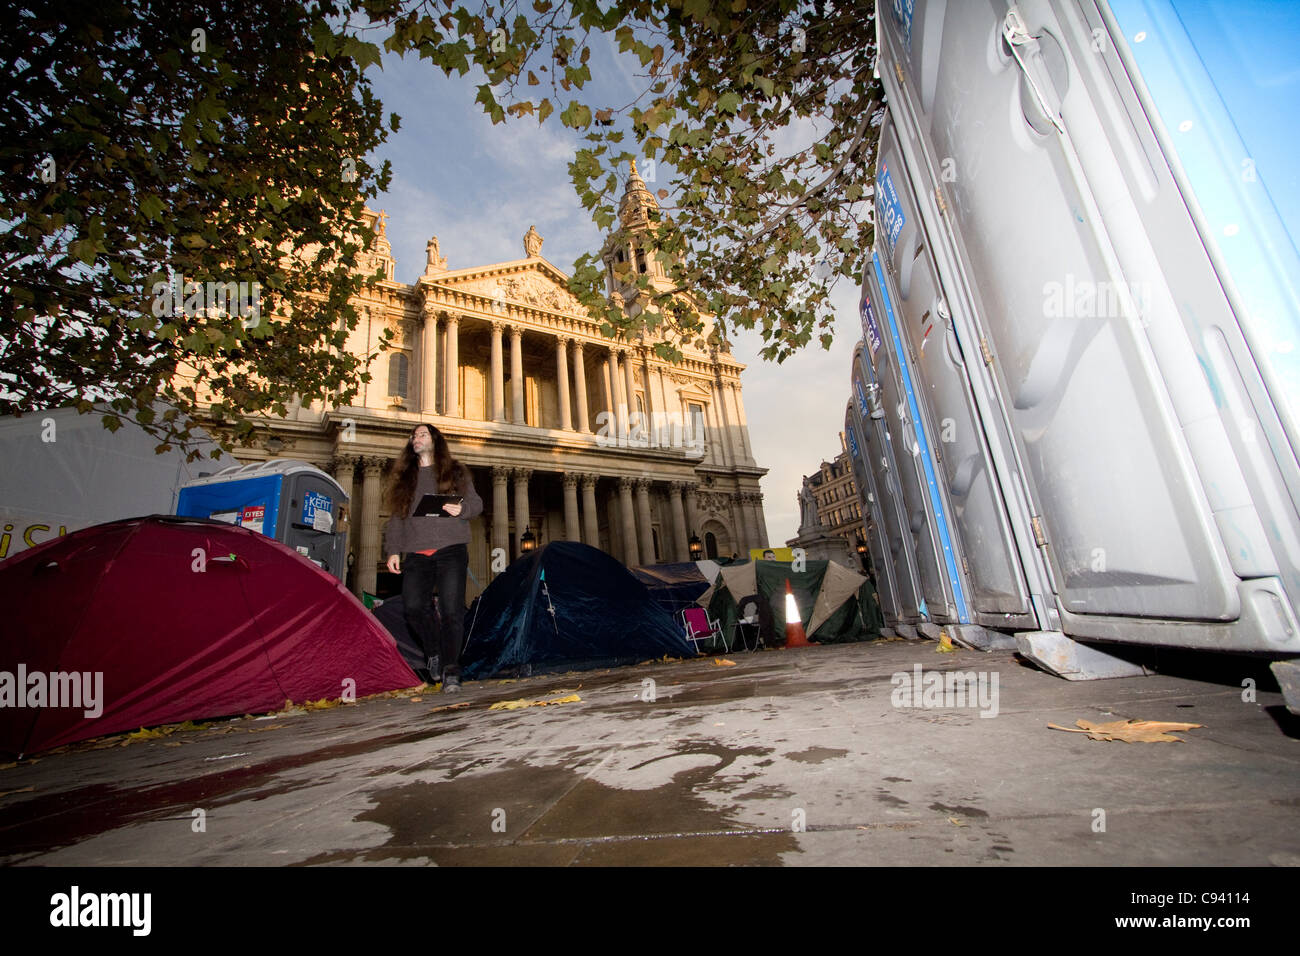 St pauls occupy protestors camping, lavatories and tents on forecourt - Stock Image